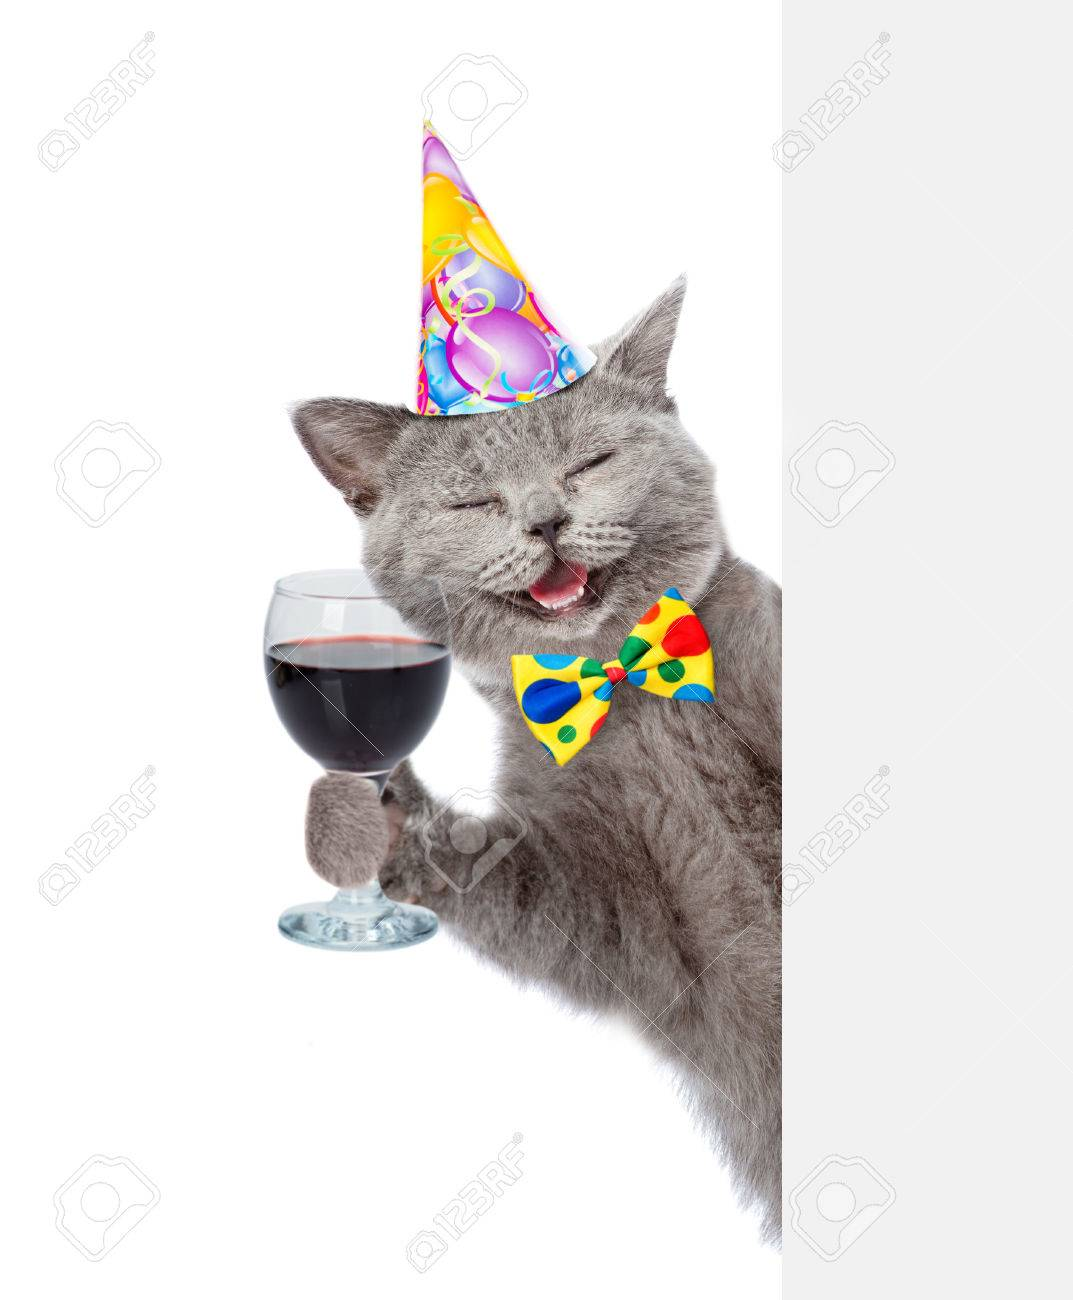 Happy Cat In Birthday Hat Holding Wineglass Isolated On White Background Stock Photo